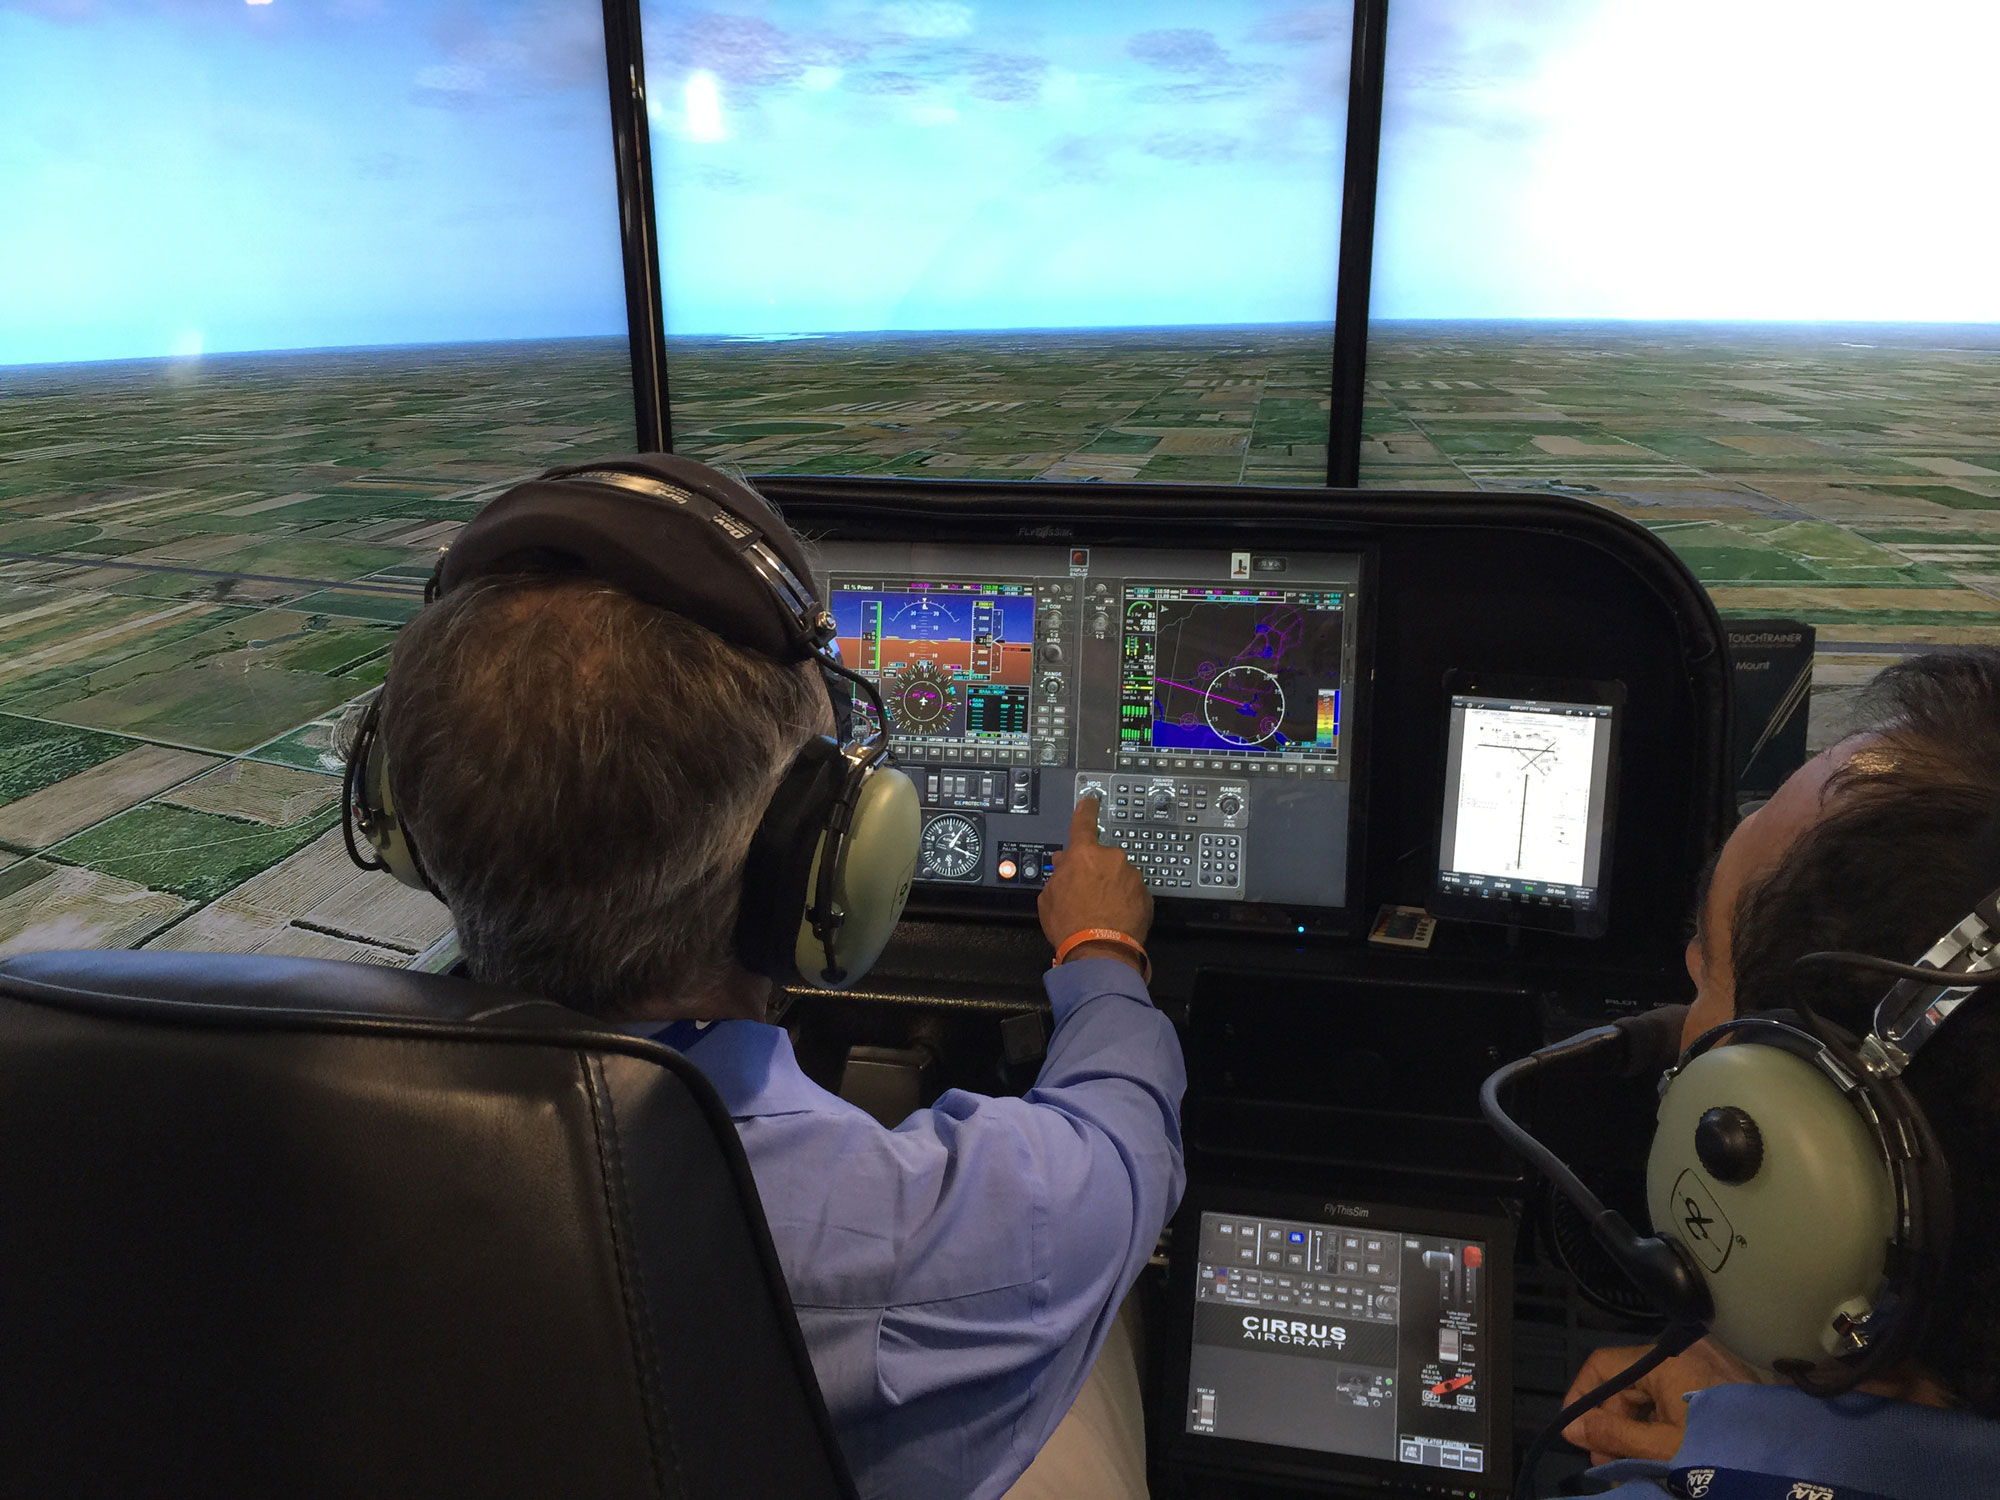 TouchTrainer FM 210 Flight Training Device Makes AirVenture Debut